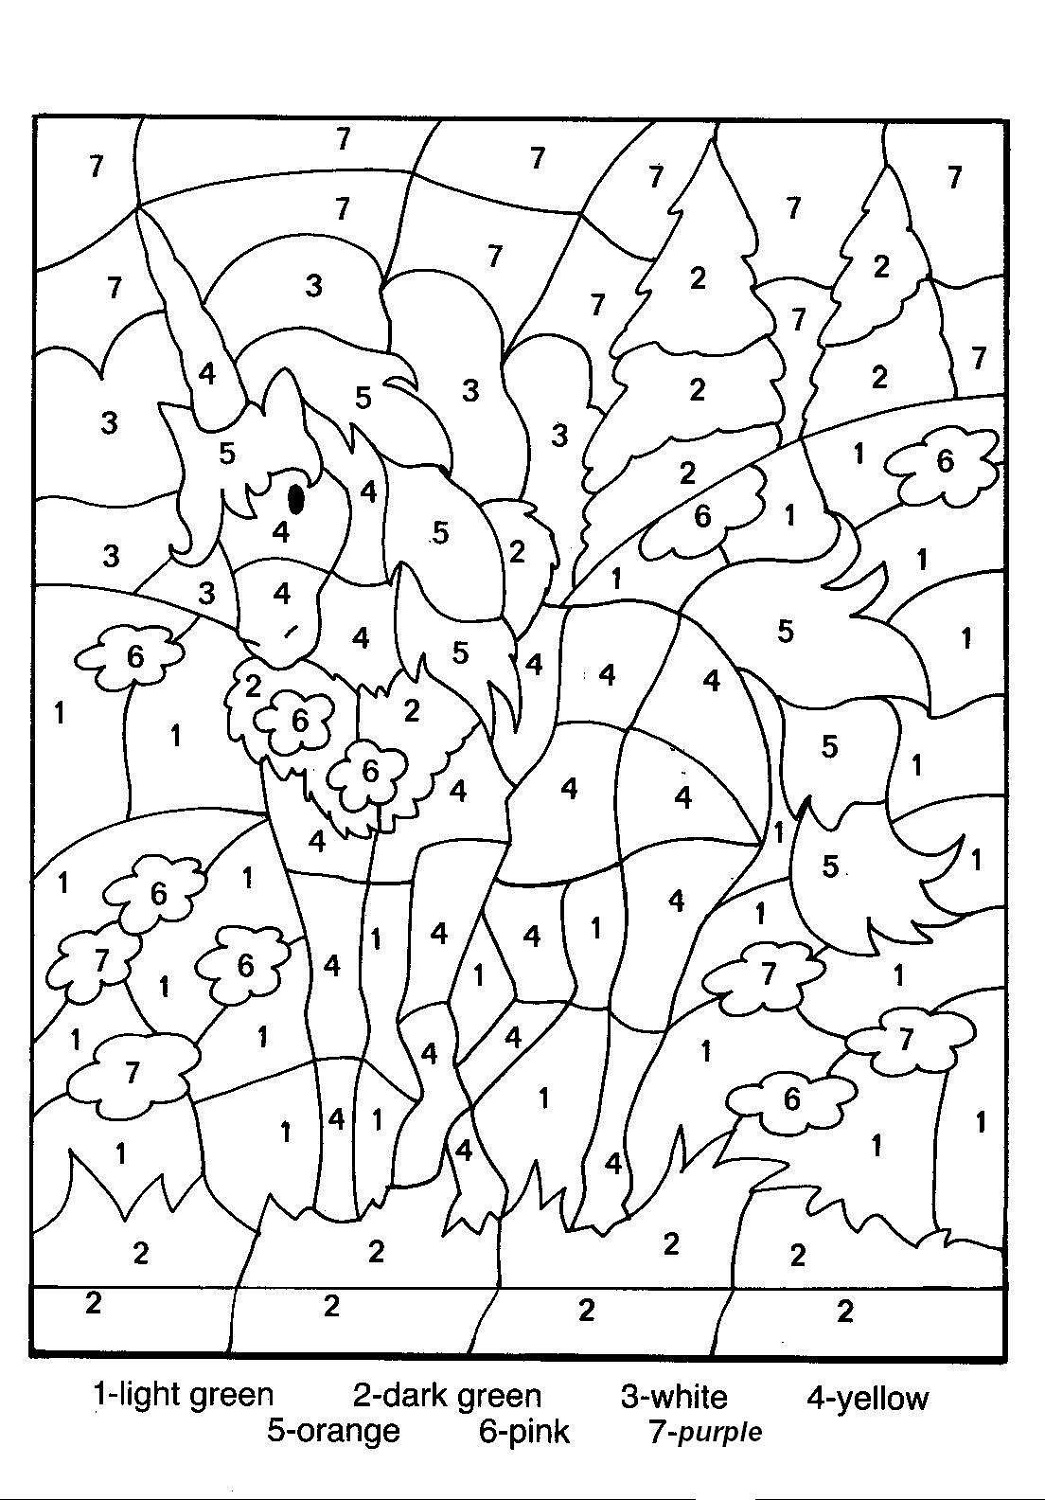 advanced color by number worksheets color by number multiplication worksheets christmas by advanced number worksheets color